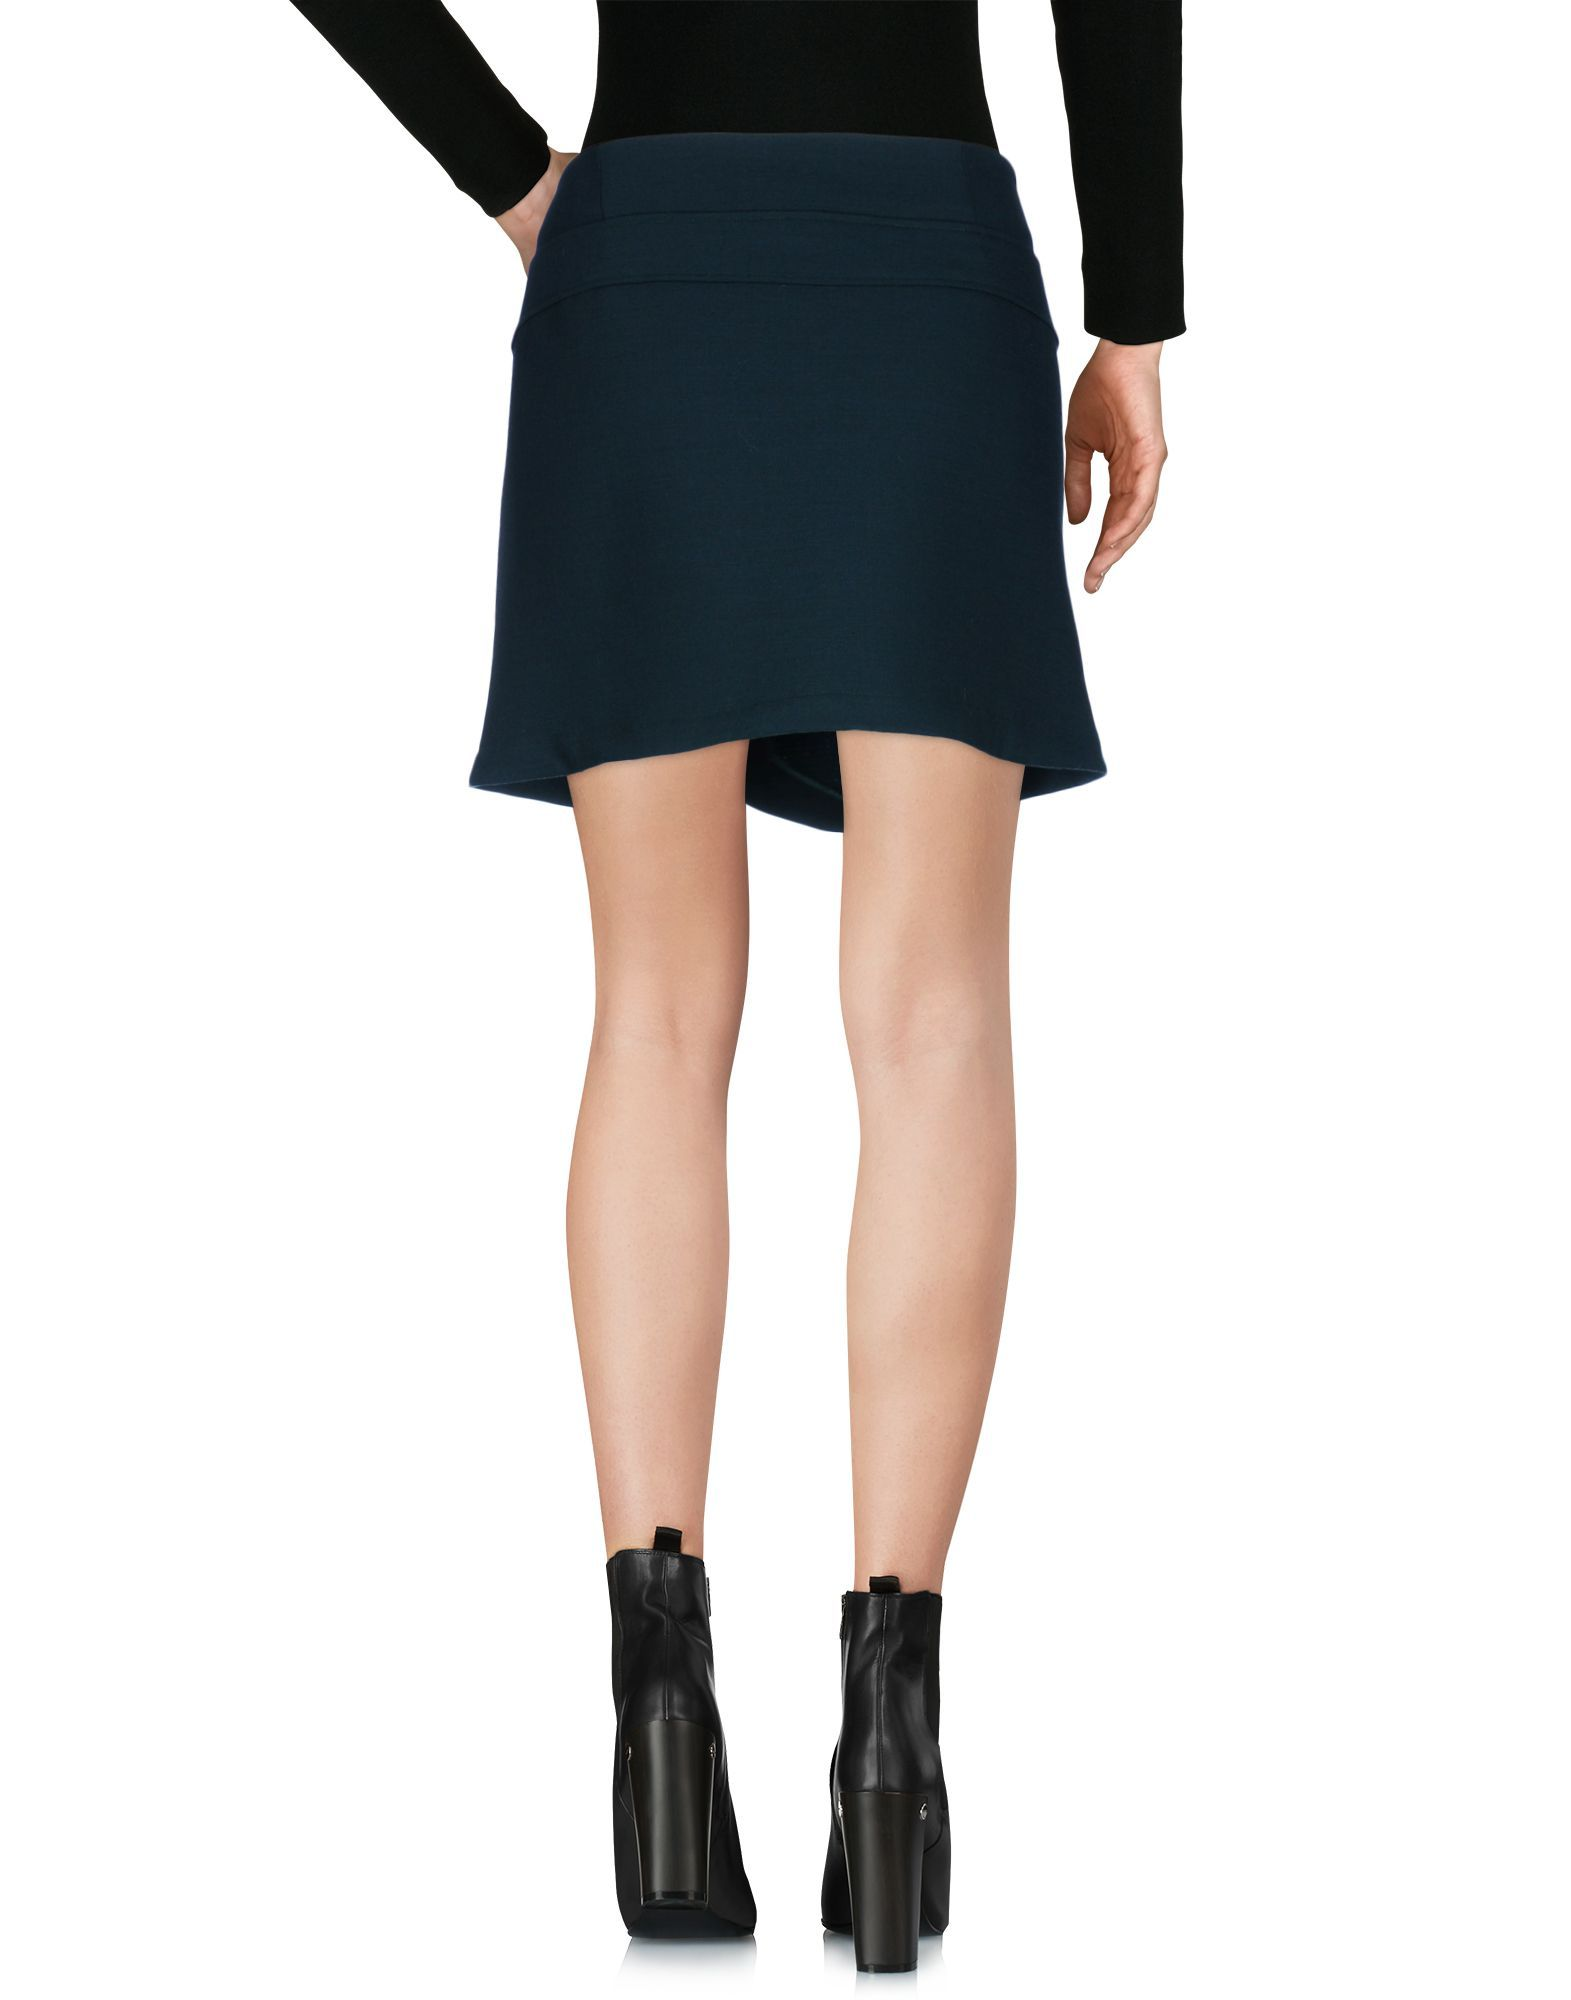 Mauro Grifoni Dark Green Short Skirt